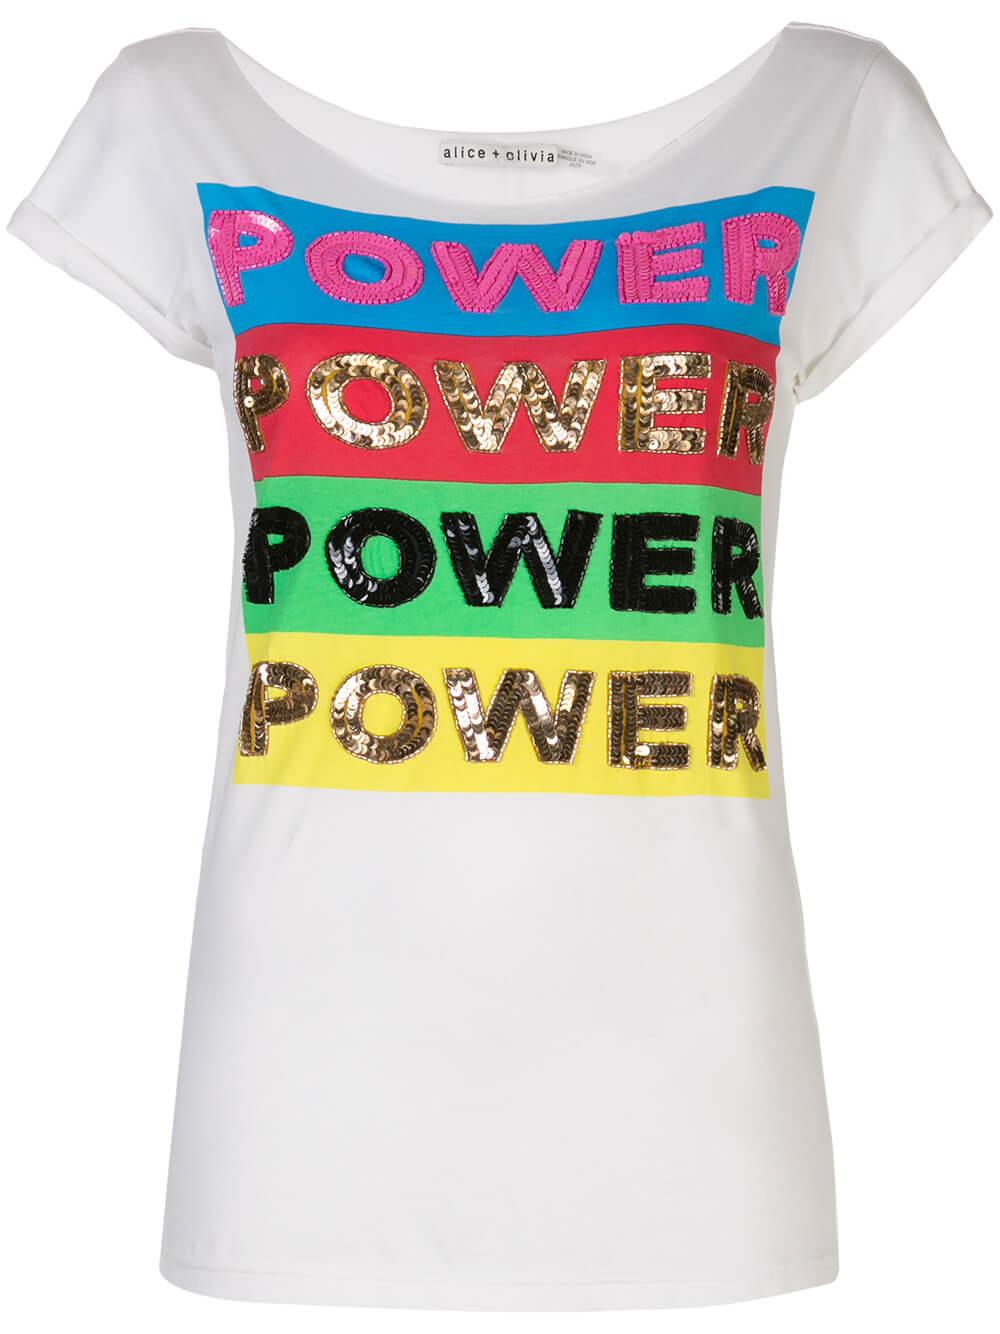 Mikey Power Graphic Embellished Tee Item # CV003V58003